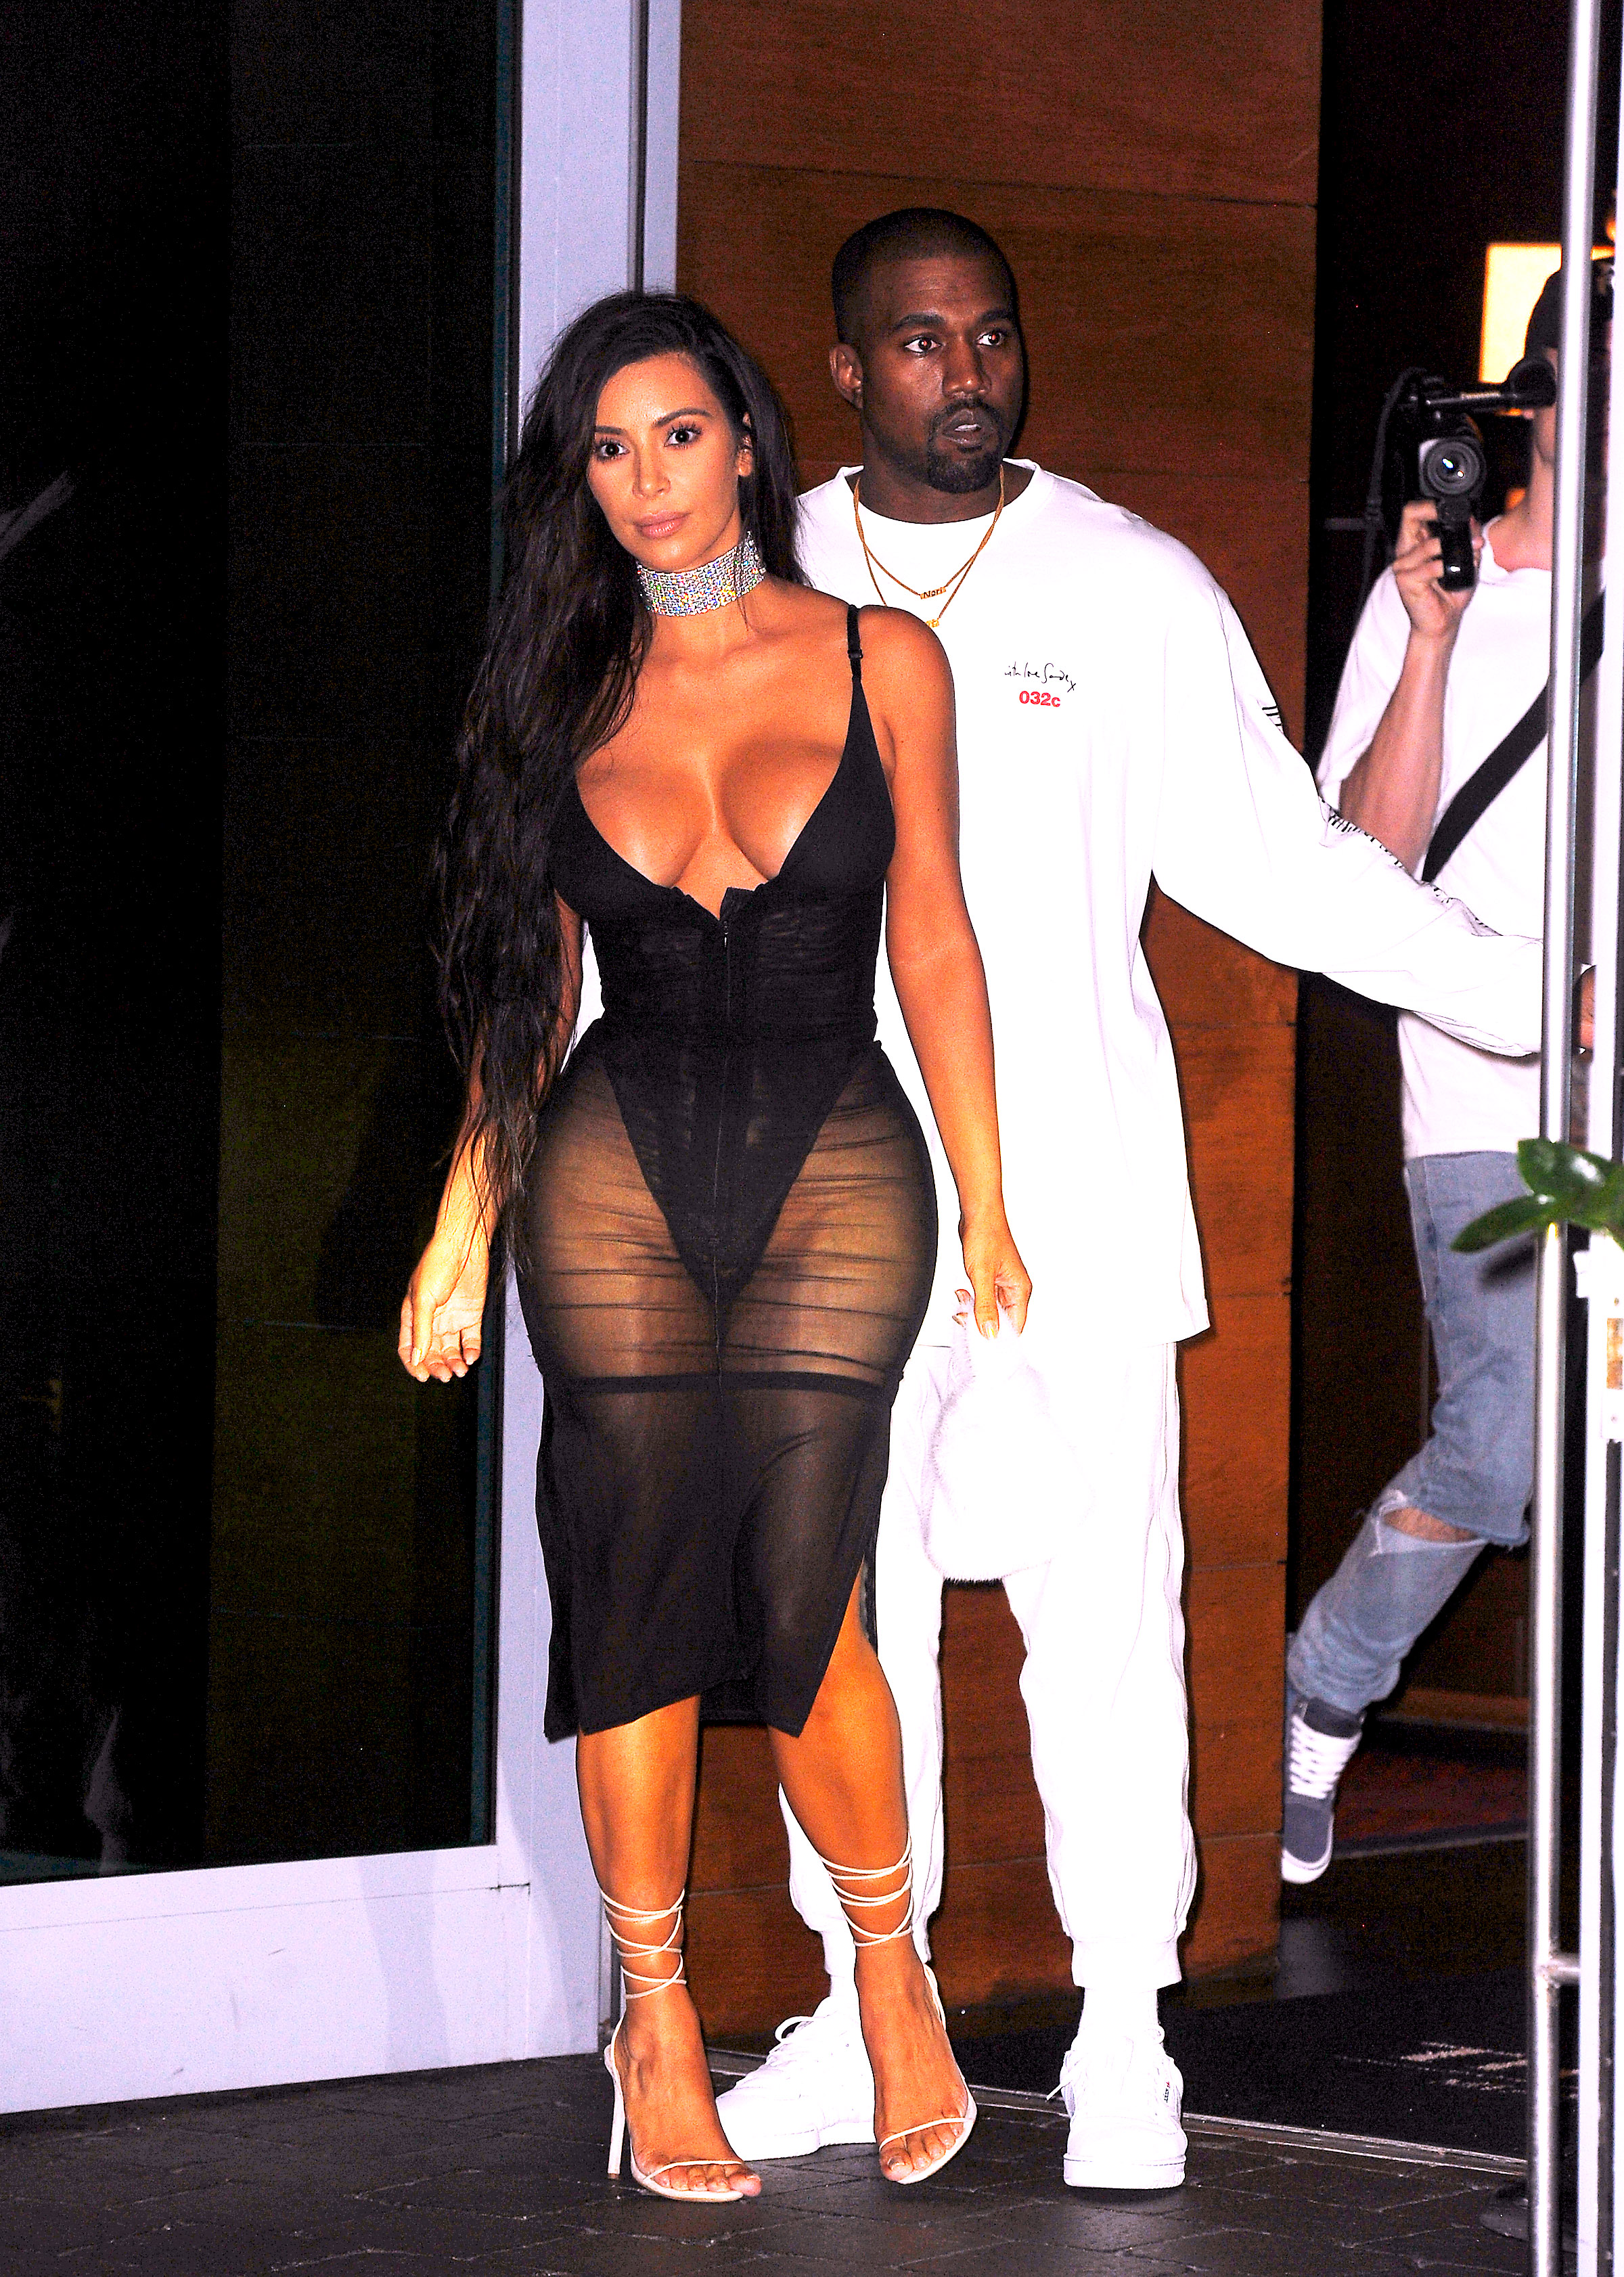 Kim Kardashian West wearing lingerie look and Kanye West in Miami